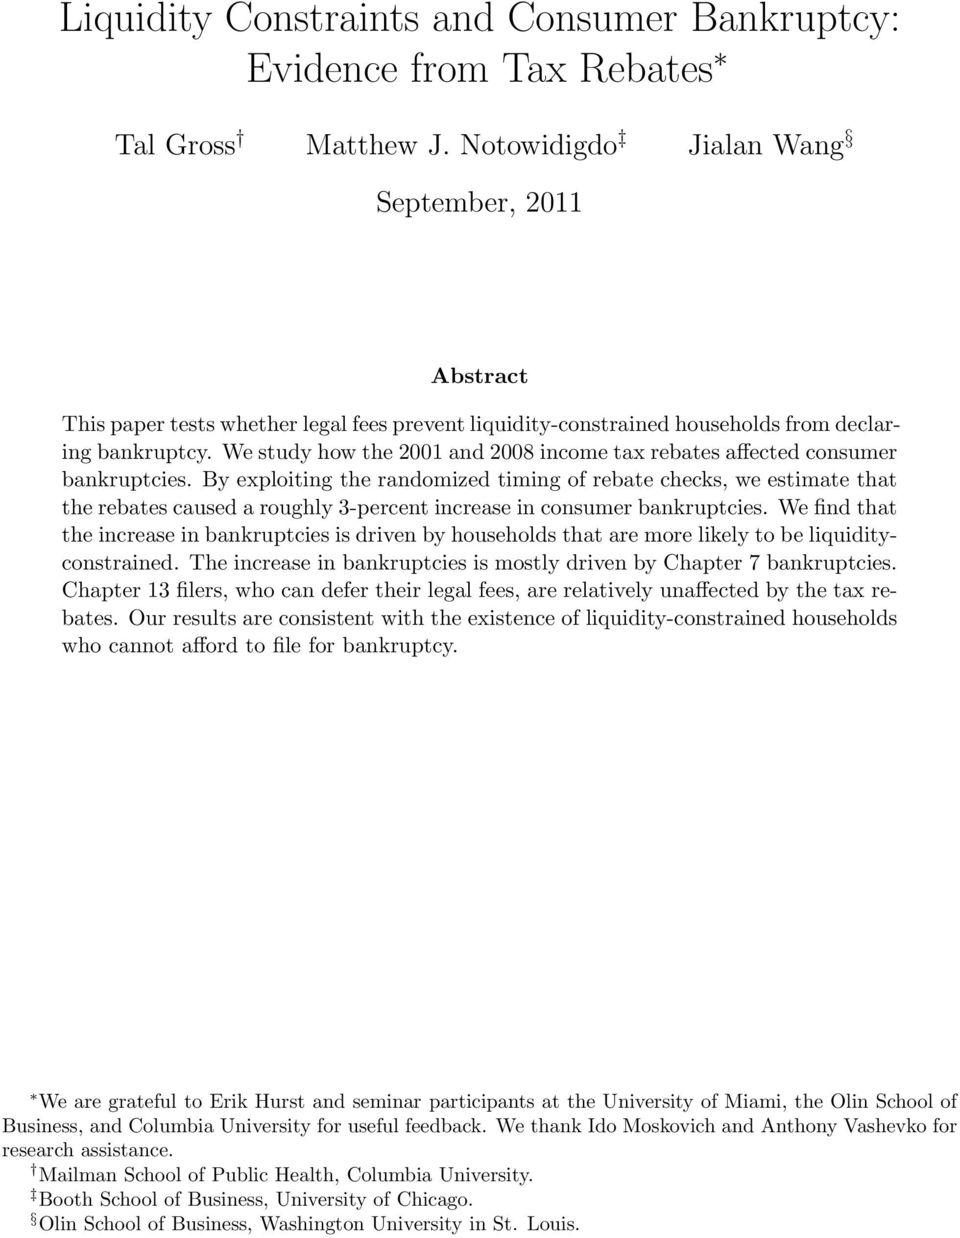 We Study How The 2001 And 2008 Income Tax Rebates Affected Consumer Bankruptcies